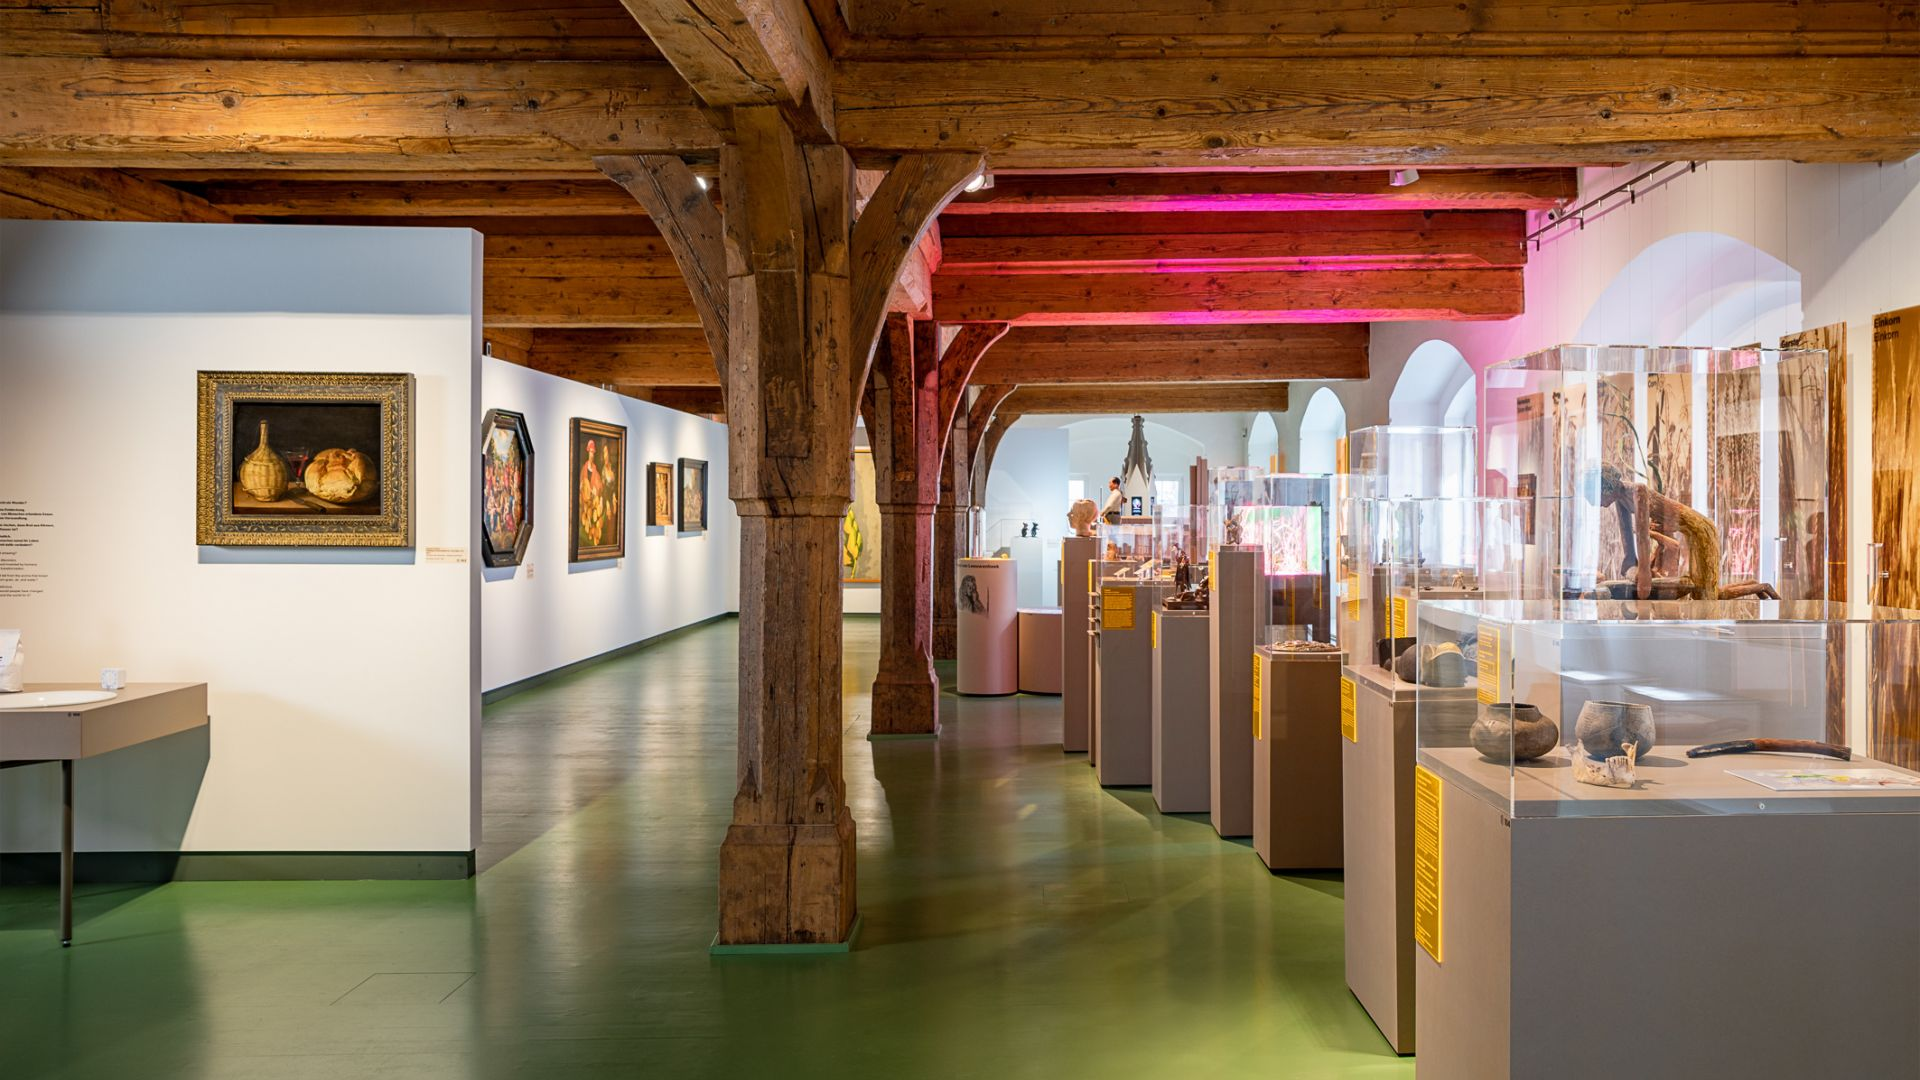 Ulm: Museum of bread and art